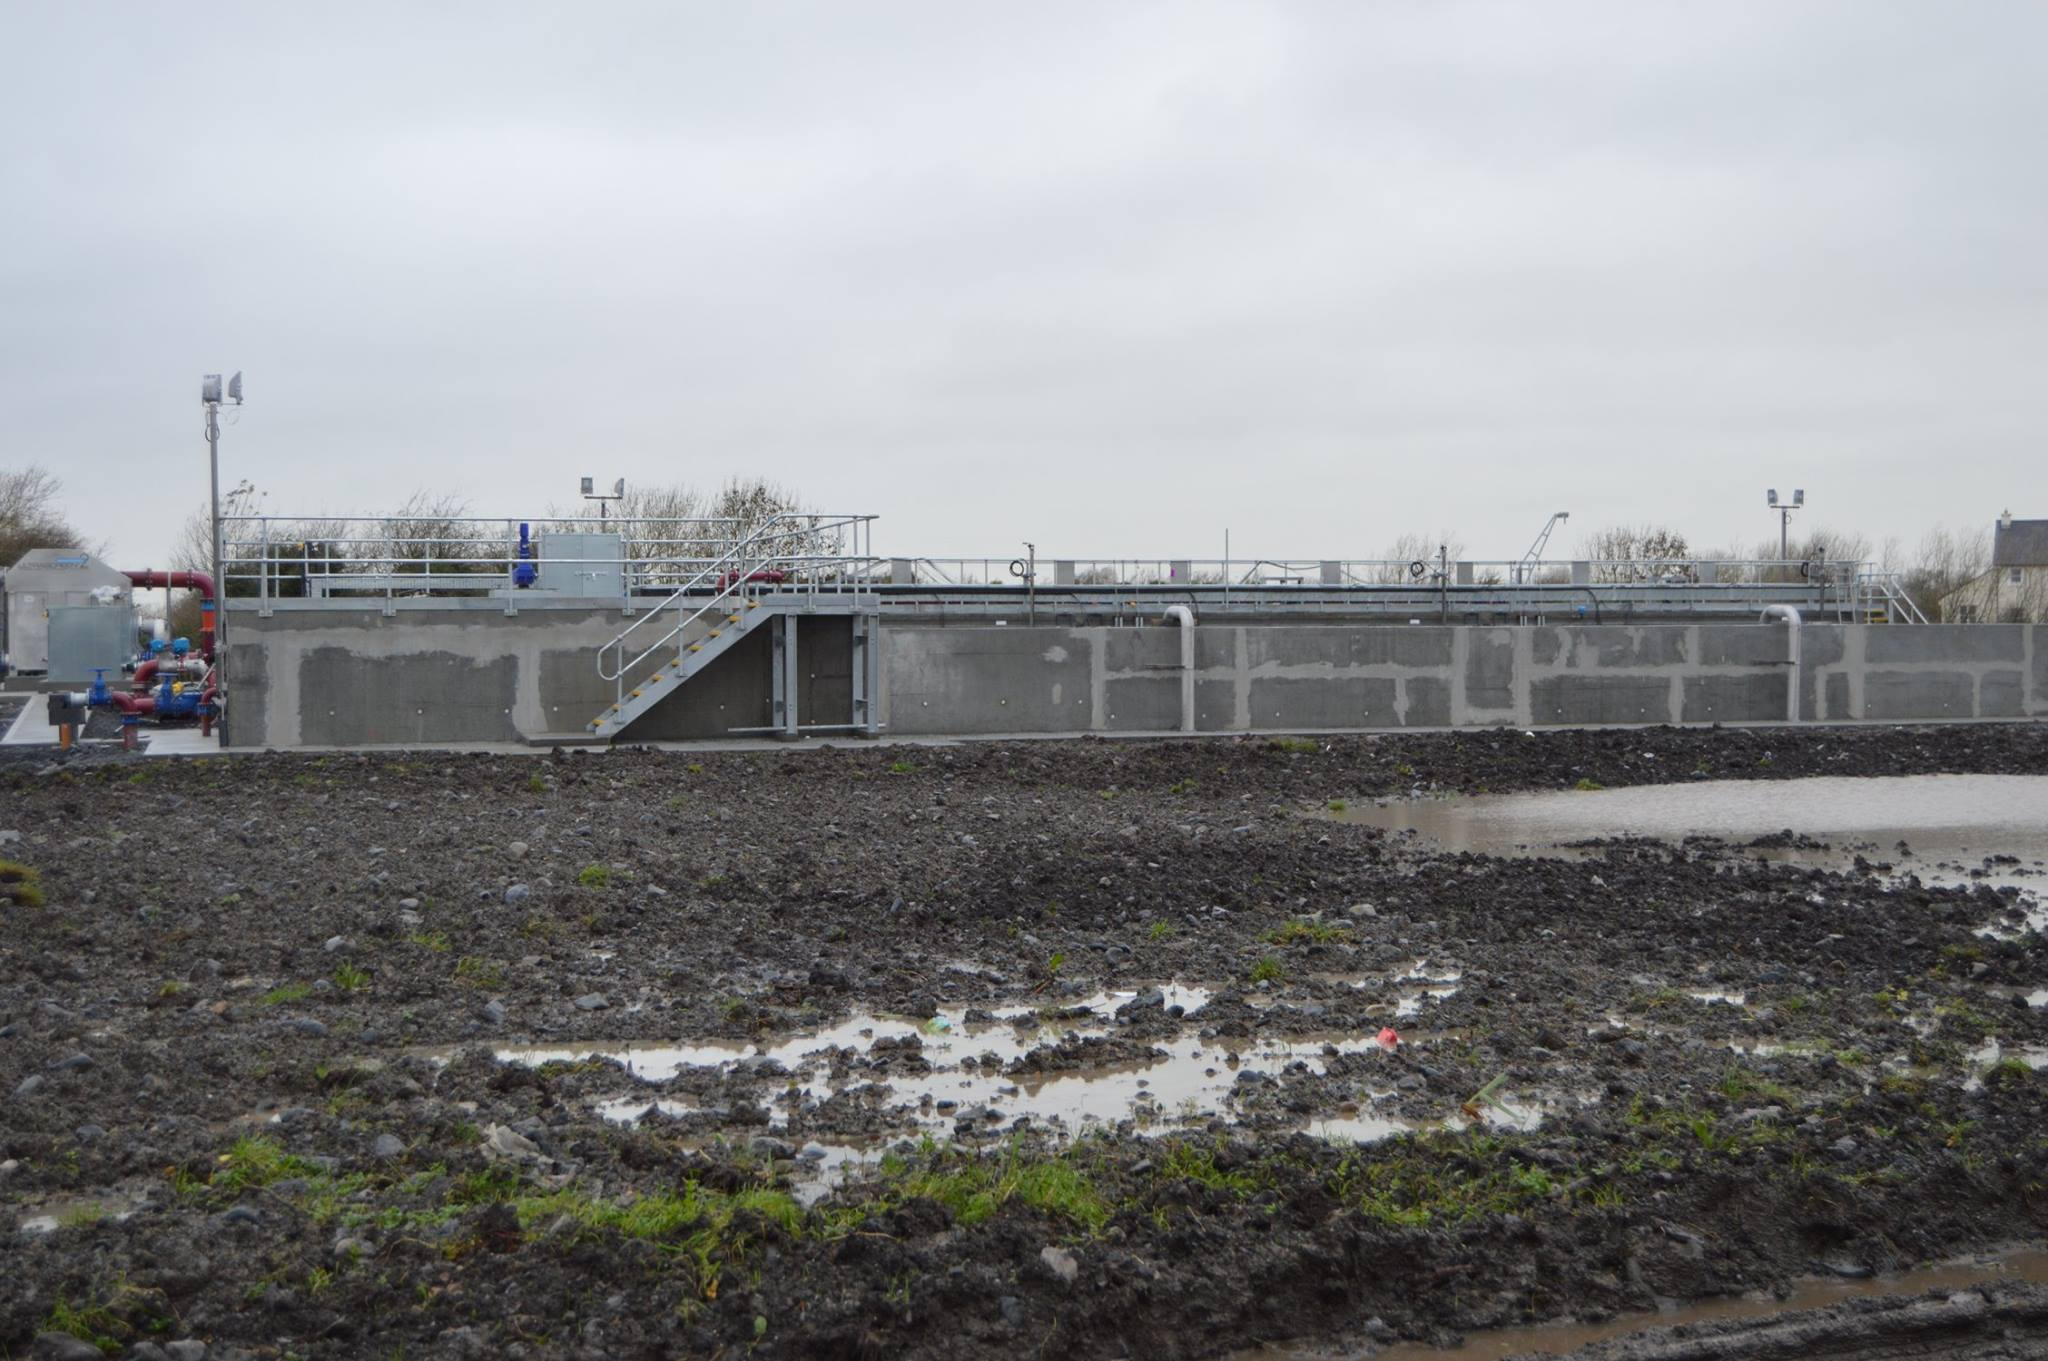 Works undertaken in Montiagh for a sewage treatment facility.